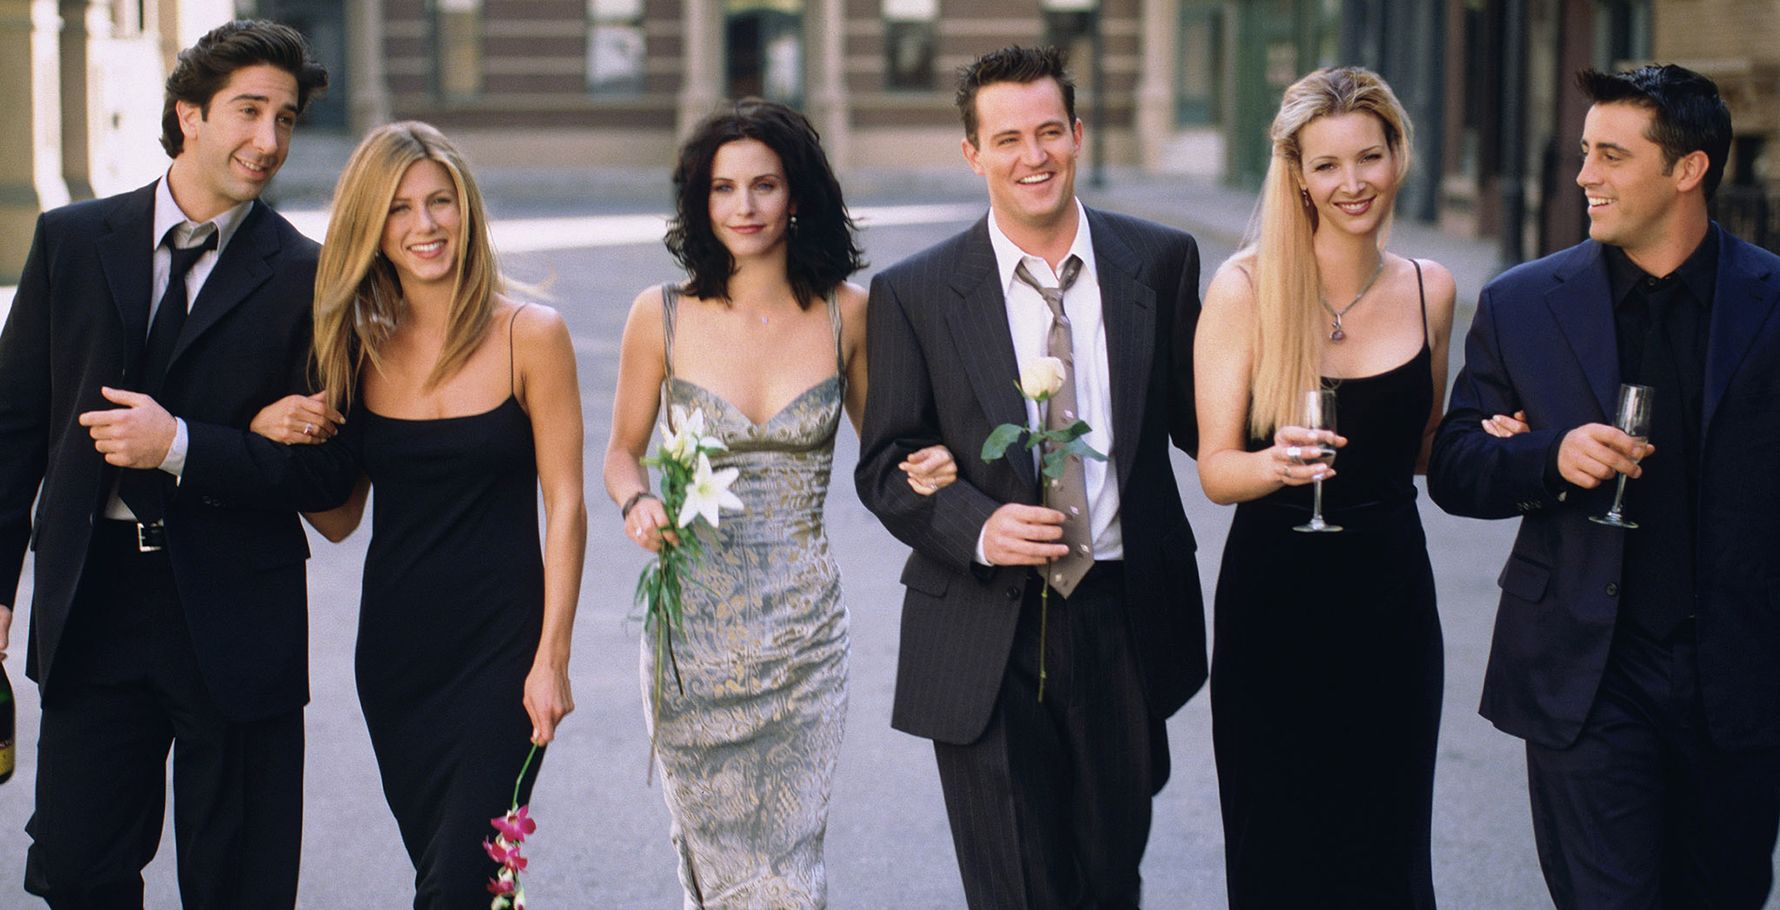 10 Things From Friends That Haven't Aged Well | ScreenRant